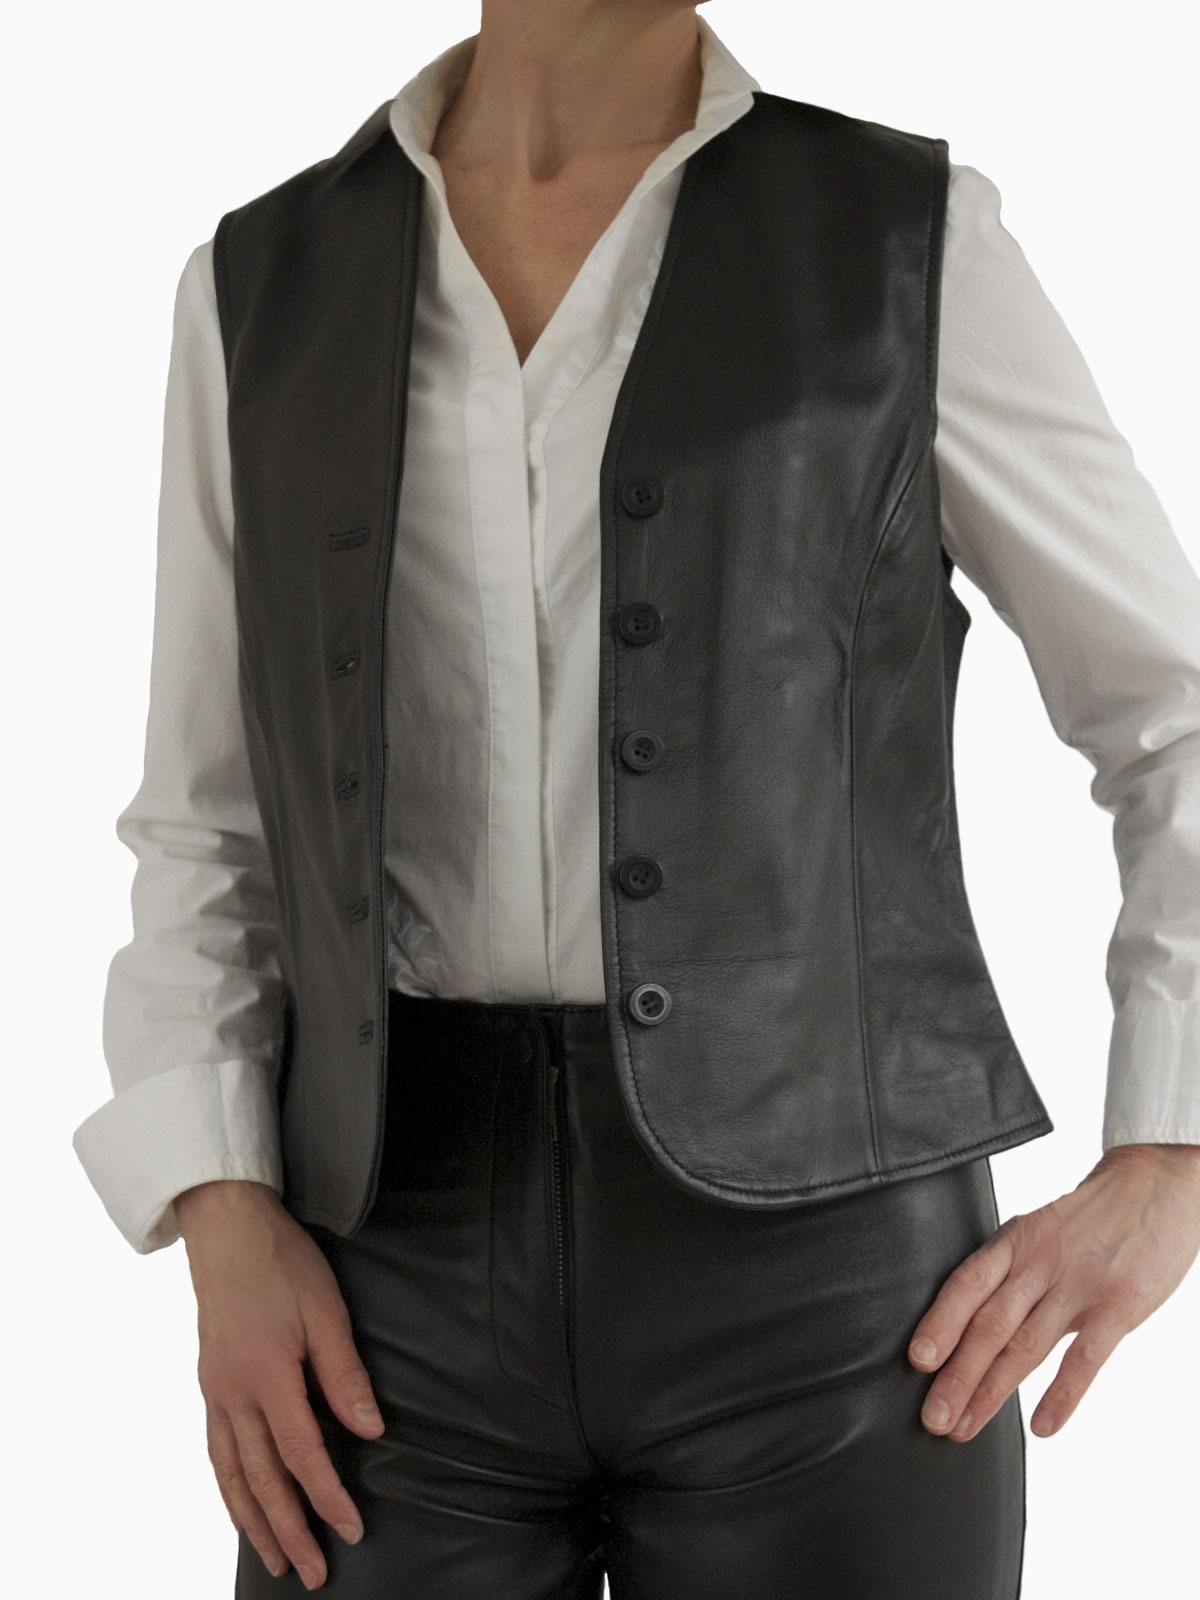 Shop for trendy fashion style waistcoats for women online at ZAFUL. Find the newest styles womens vest with affordable prices. Black PU Leather Turn Down Collar Waistcoat - Black S. Quick View. Embroidered Frayed Denim Waistcoat - Cloudy M. Quick View. Asymmetric Zipper Denim Waistcoat - Blue L.